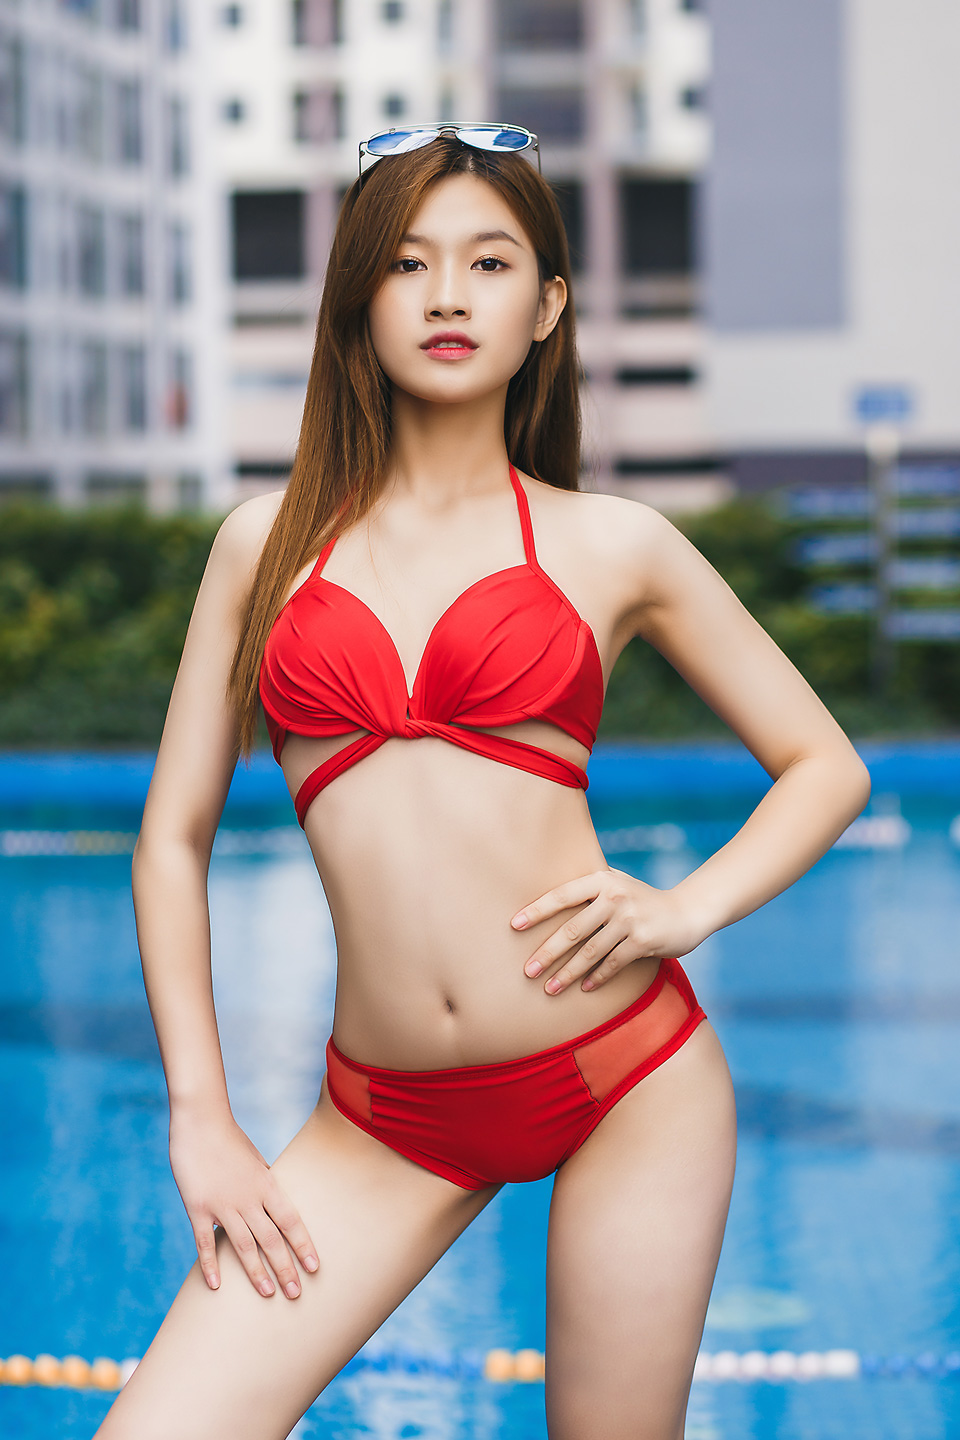 /UserFiles/miss/miss2019/DangThiPhuongThao/dang-thi-phuong-thao-toho (5).jpg